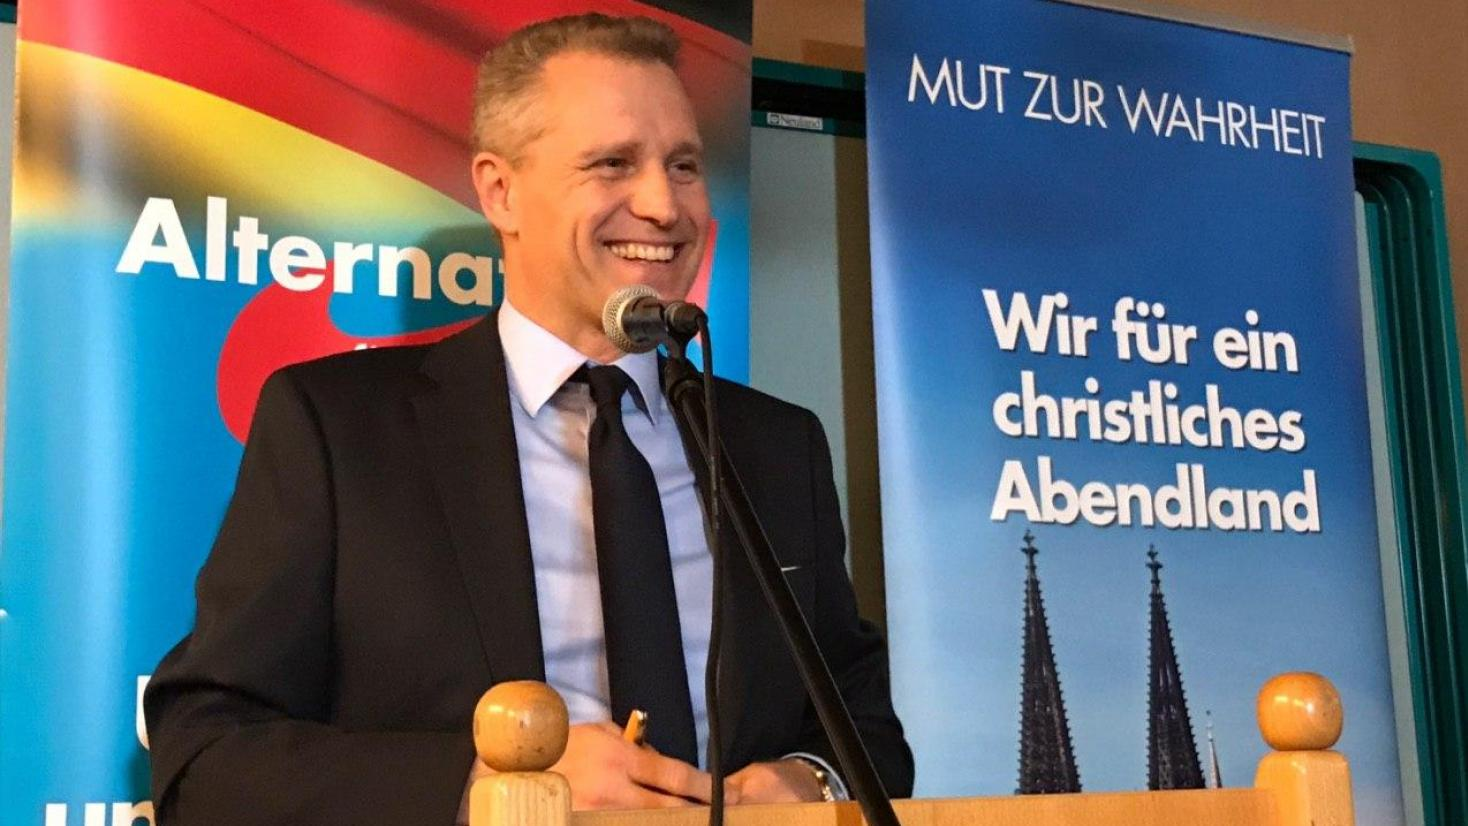 Petr Bystron, AfD